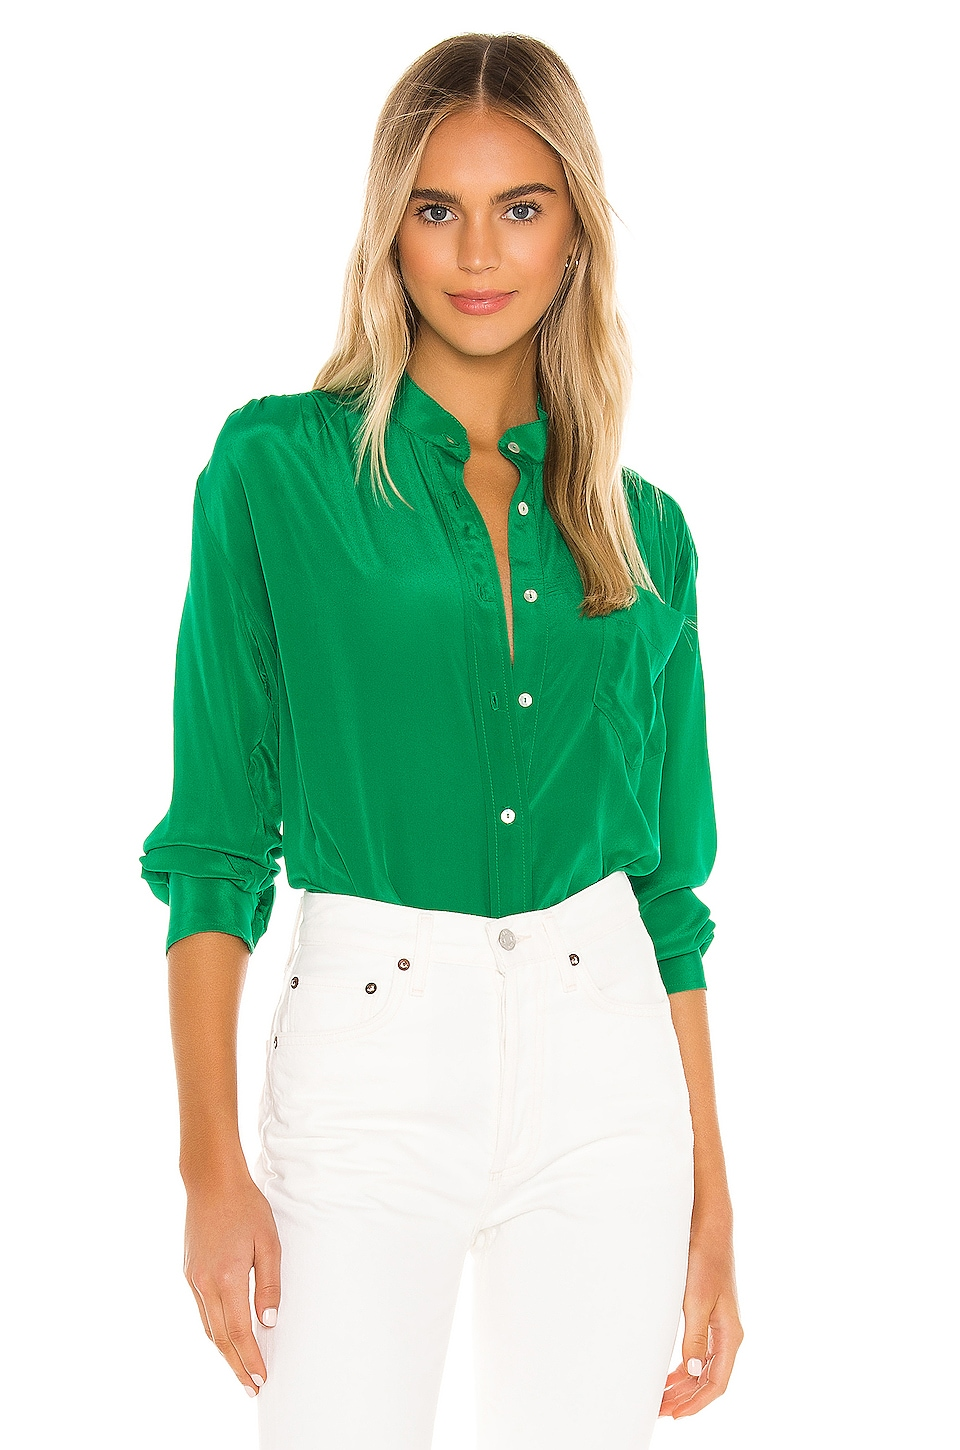 Cali Dreaming The Ace Shirt in Forrest Green